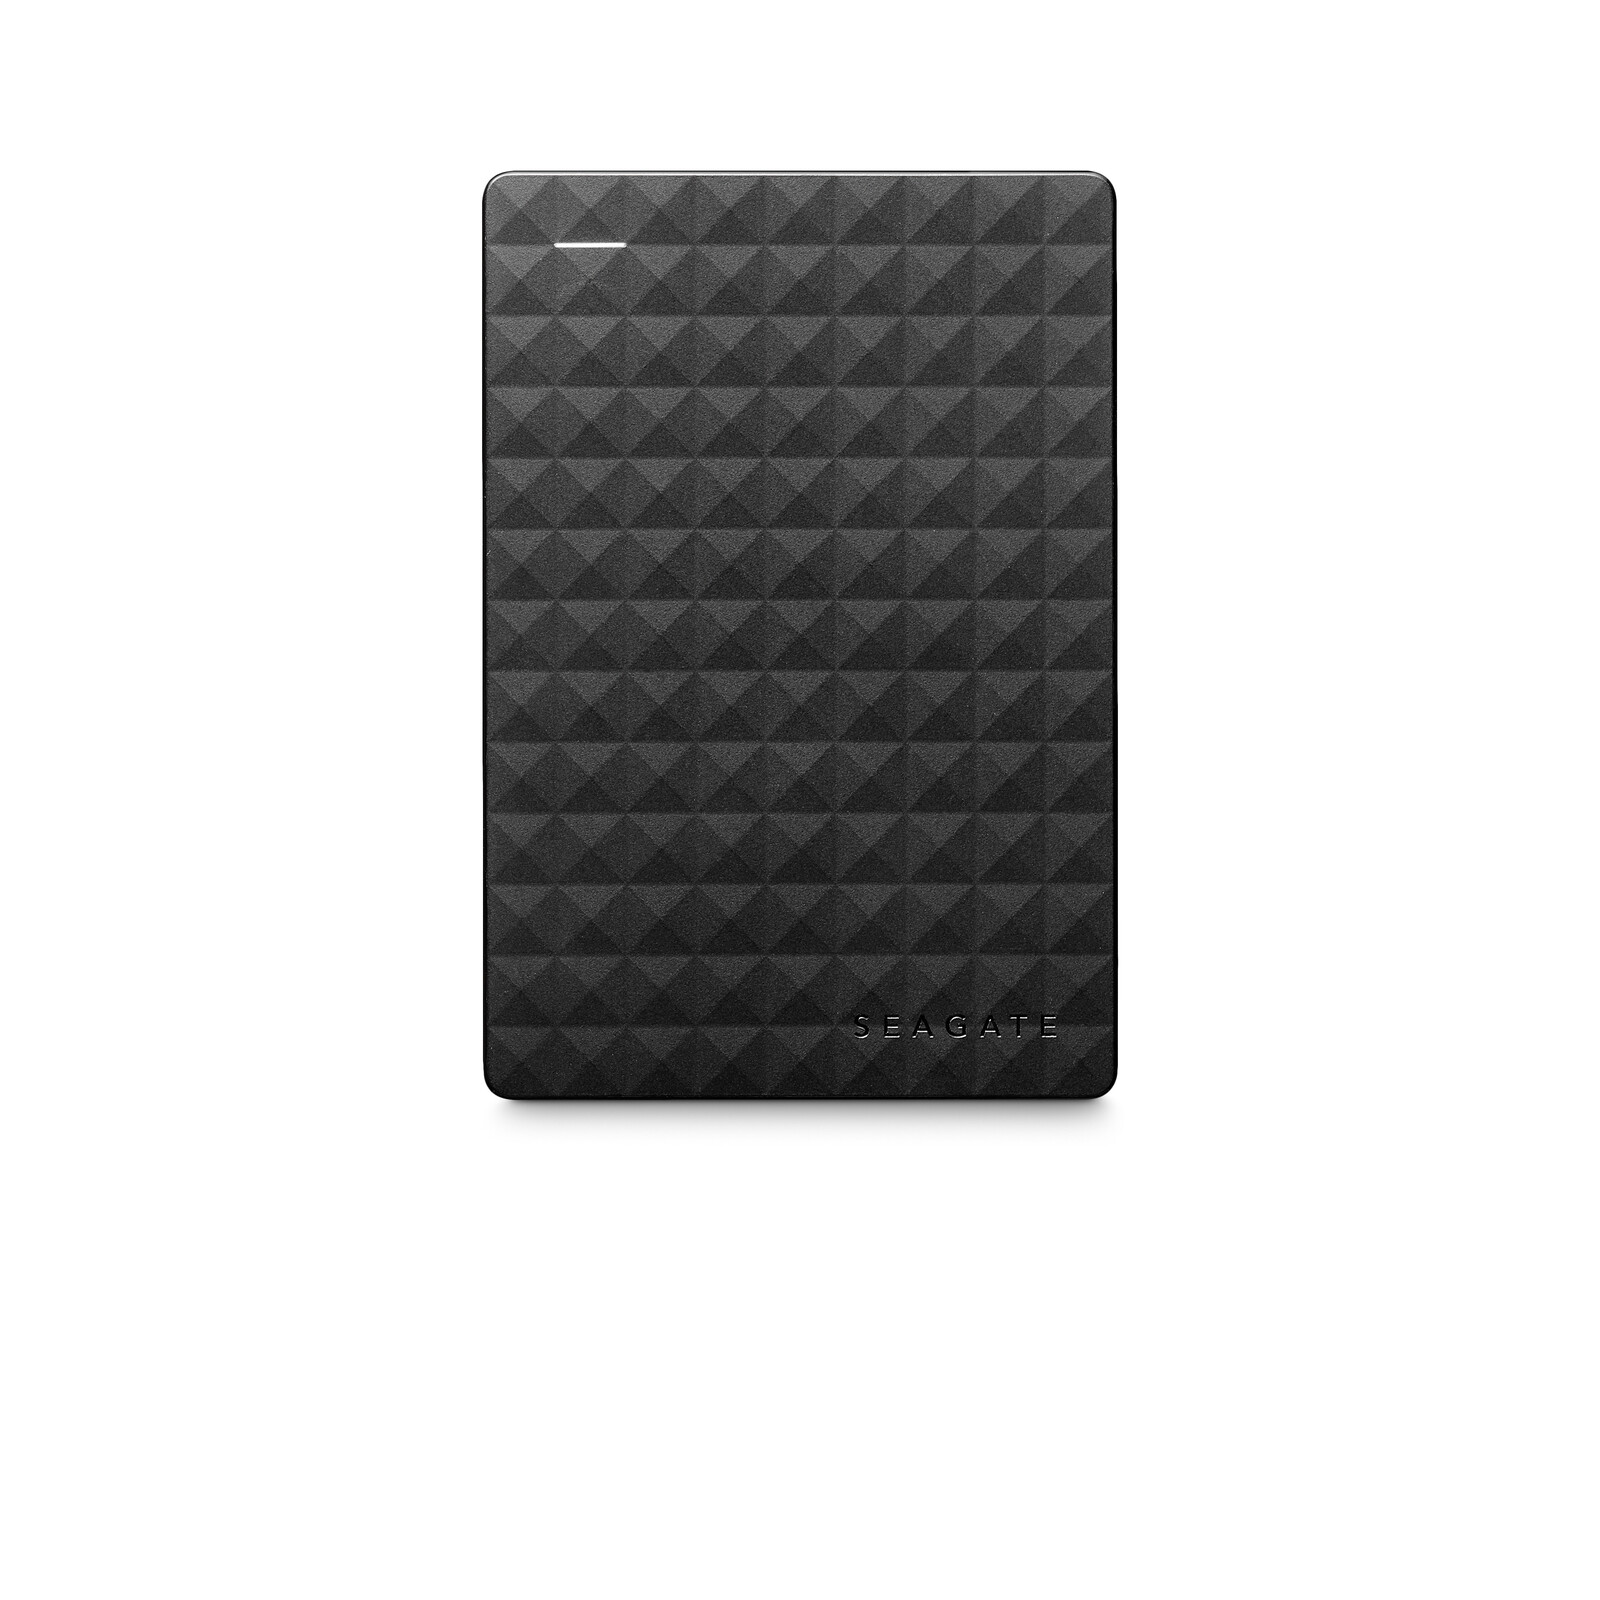 """Seagate Expansion HDD 2TB 2,5"""" USB 3.0"""